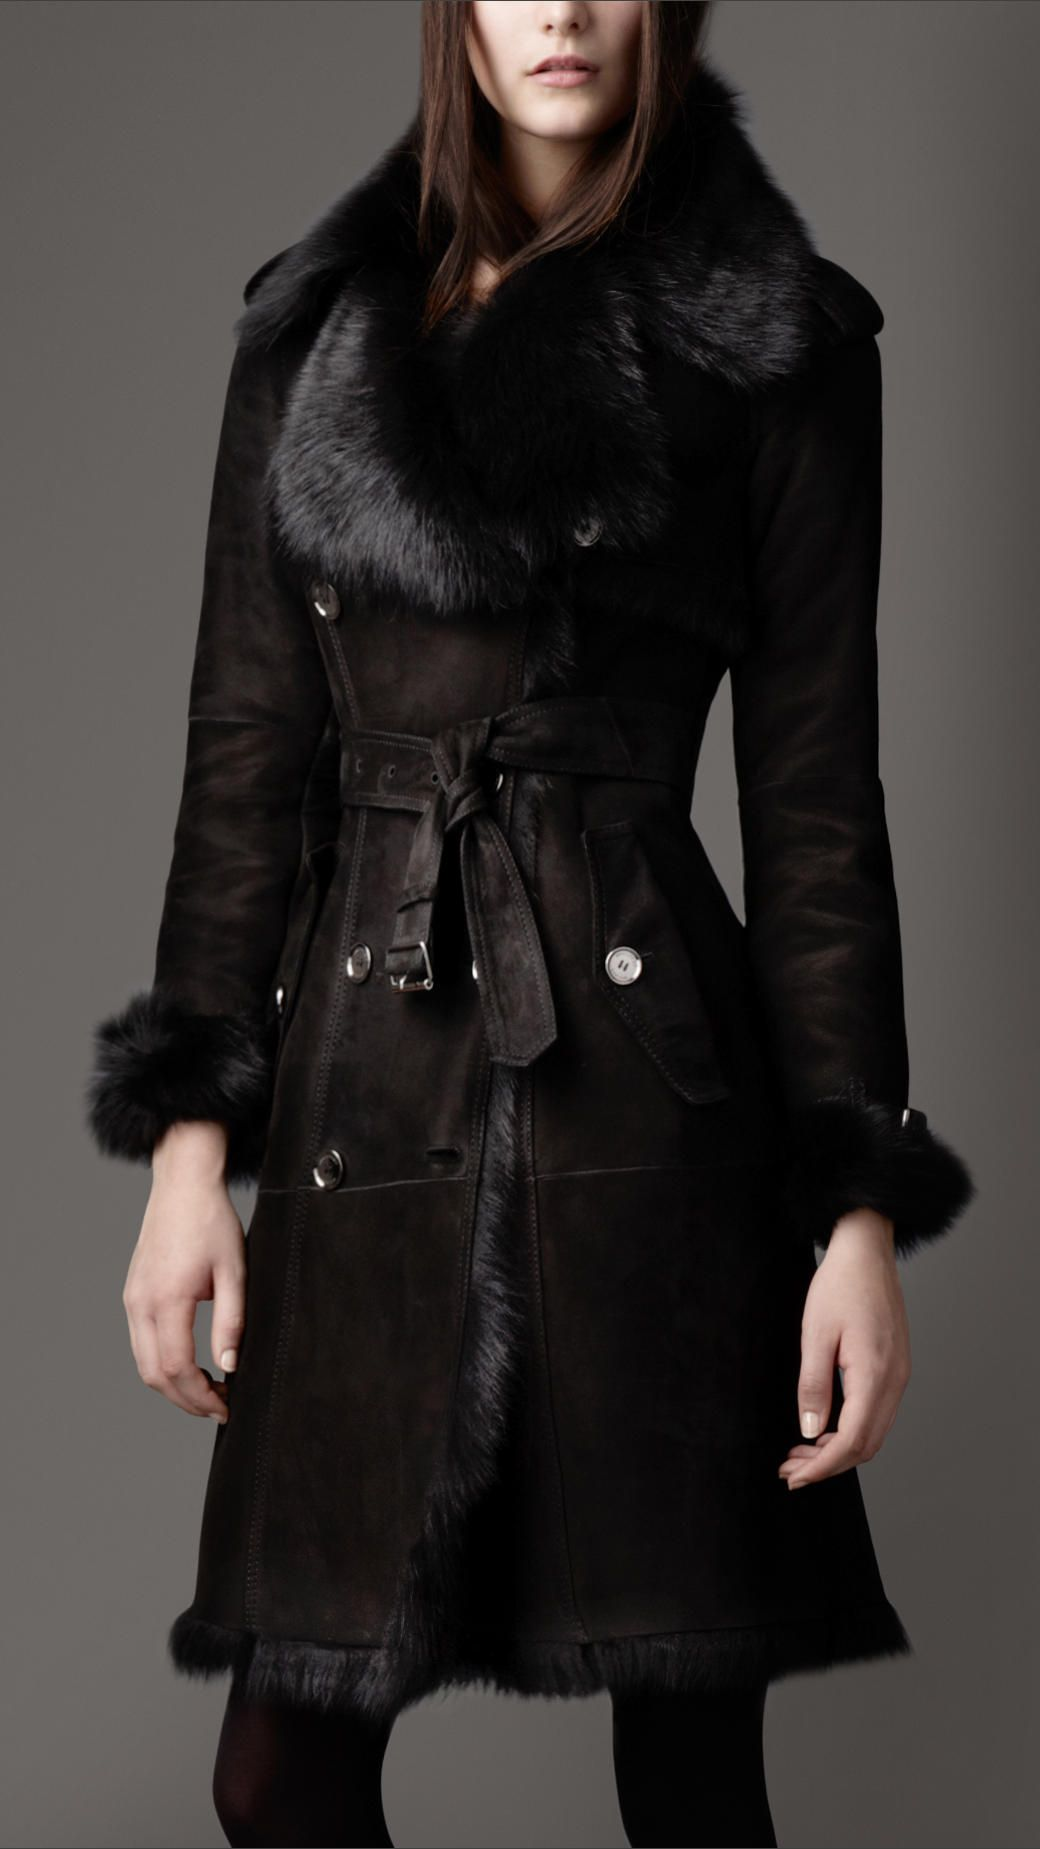 Women's Black Shearling Trench Coat | Trench and Coats